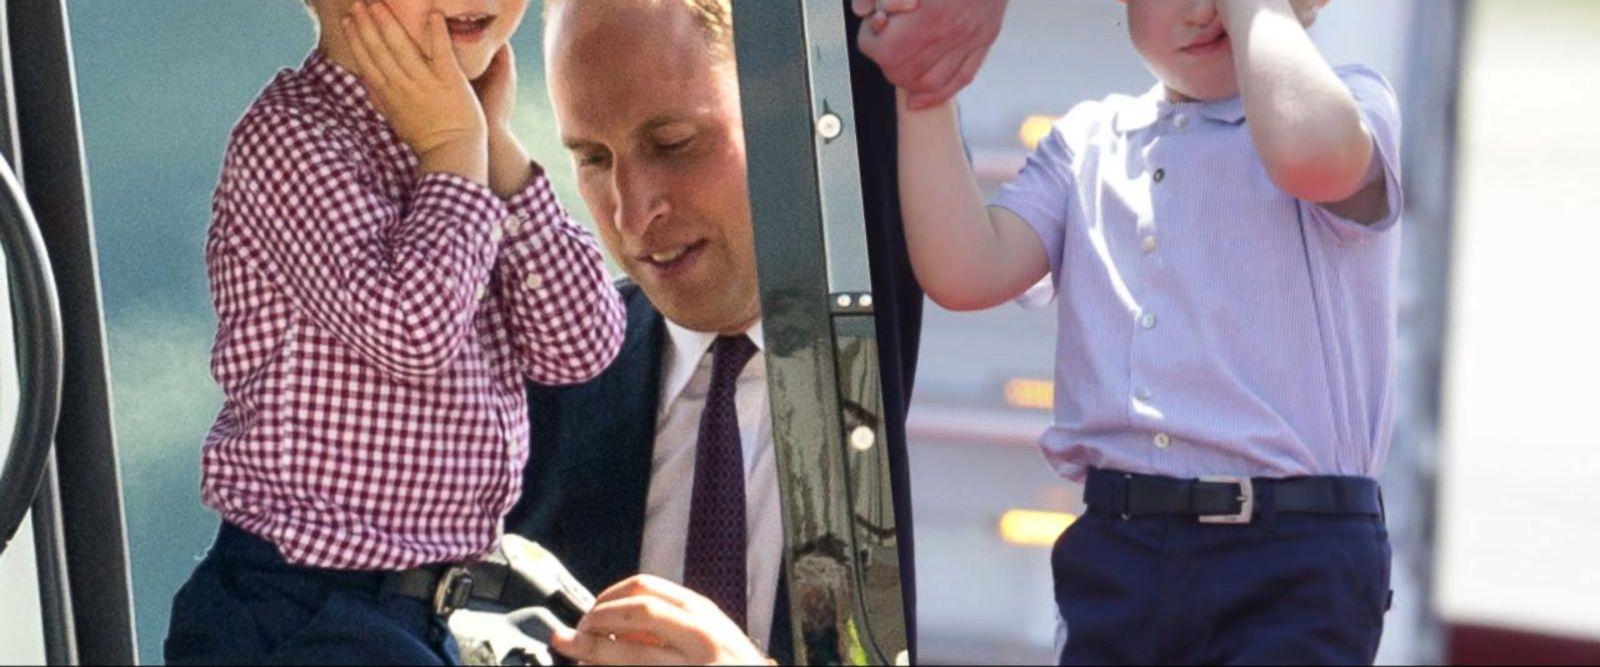 VIDEO: Prince George celebrates his 4th birthday